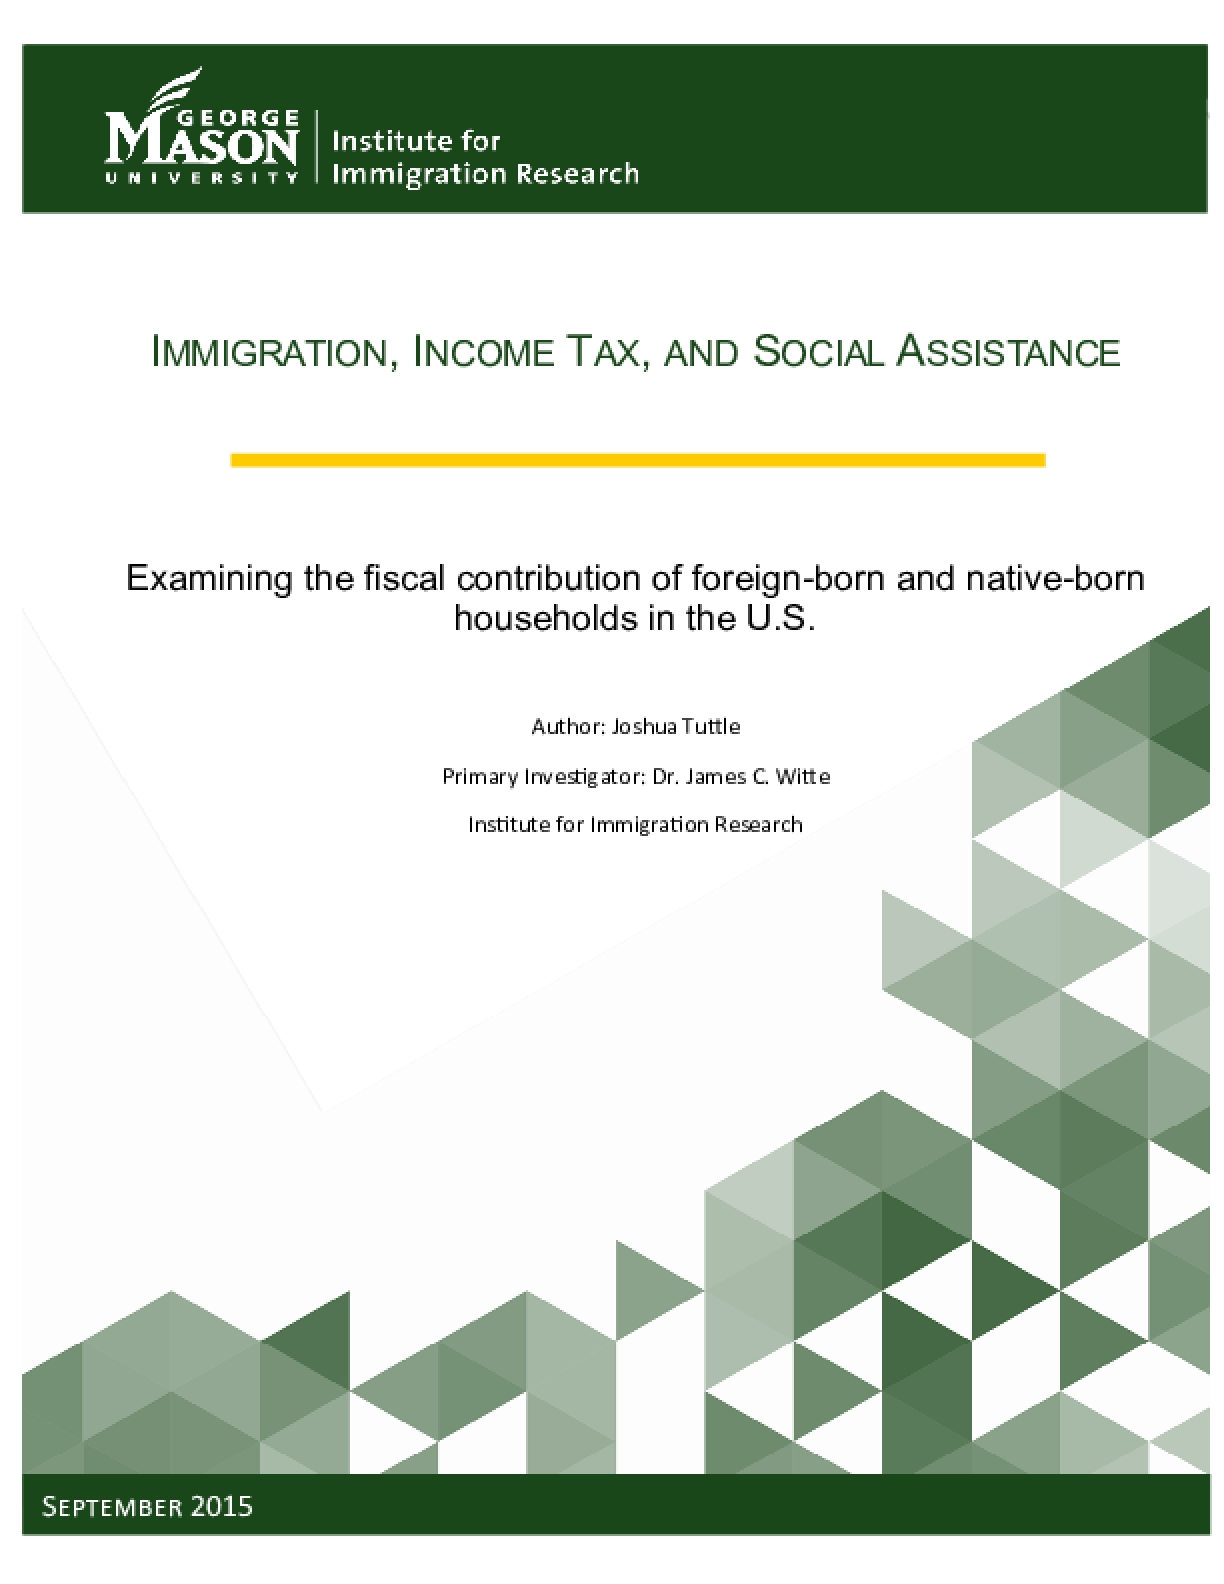 Examining the fiscal contribution of foreign-born and native-born households in the U.S.